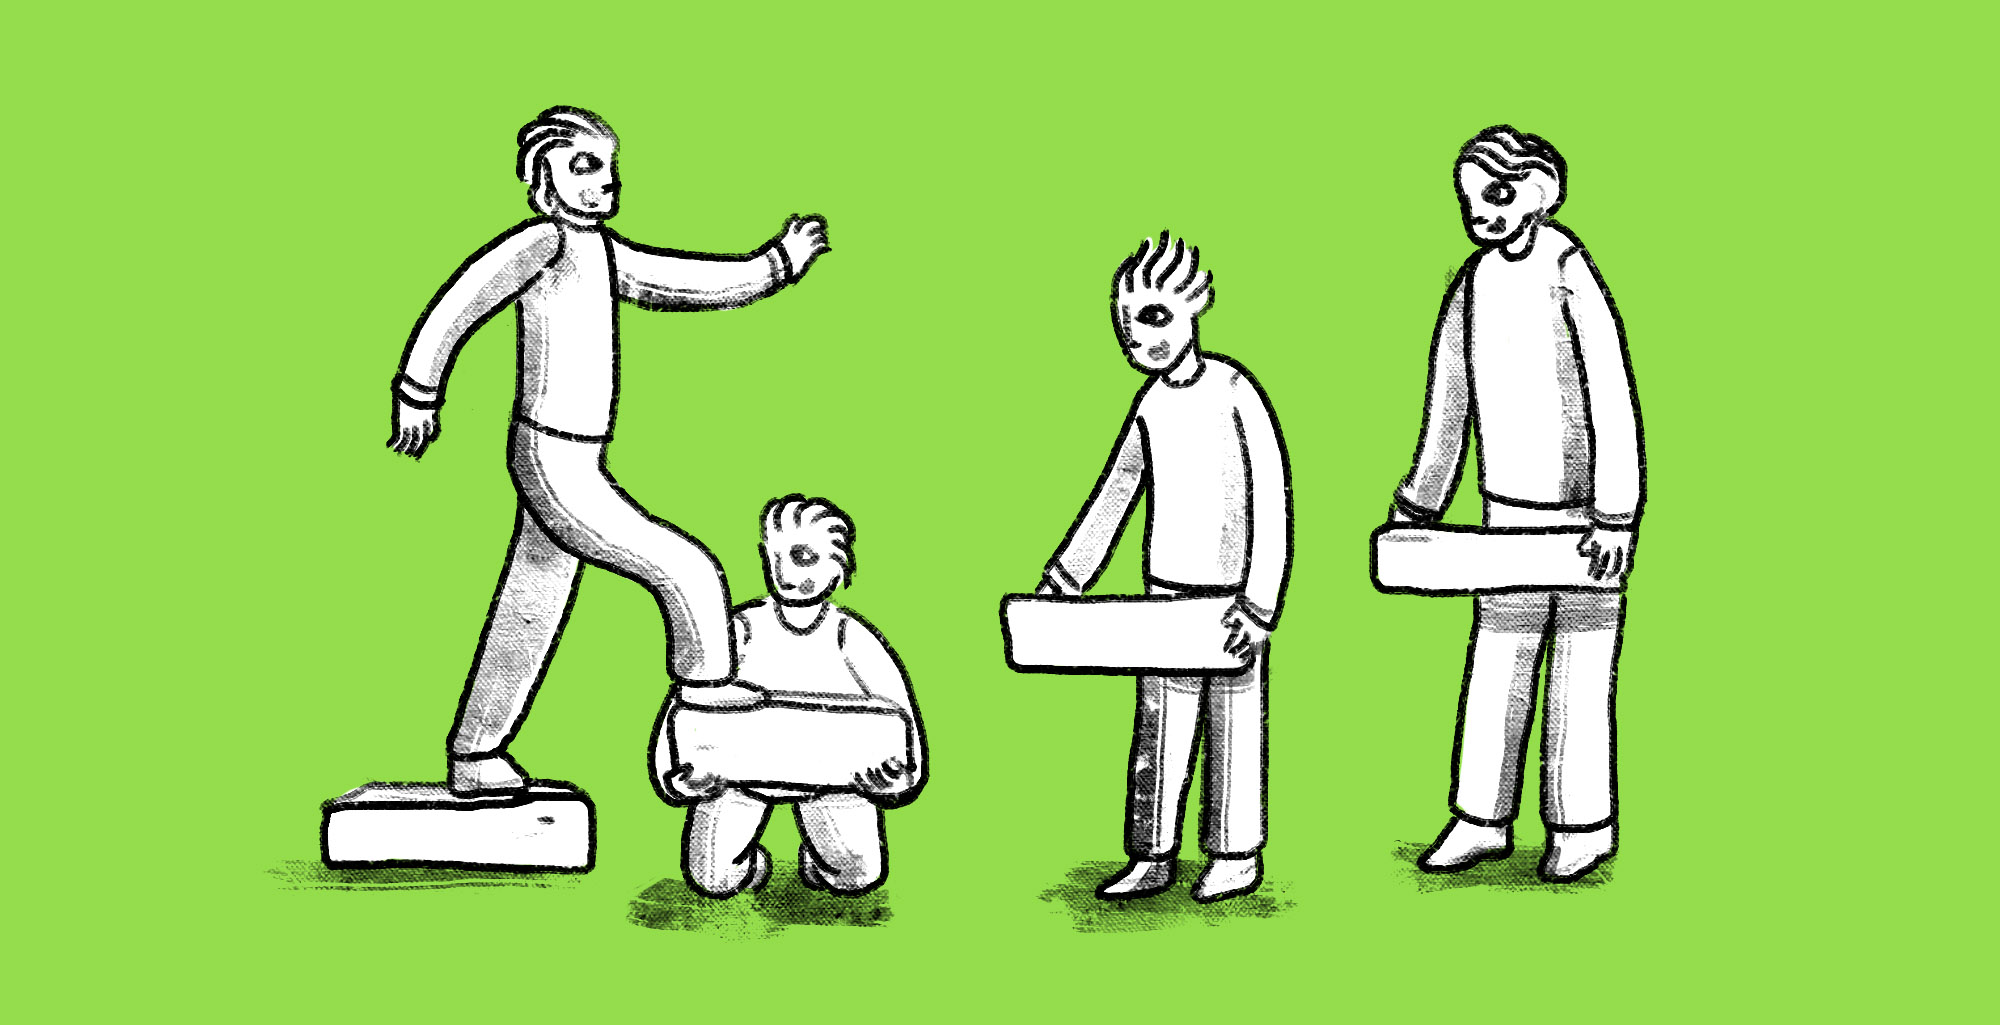 Illustrated man walking up boxes held up by other men; custom illustration